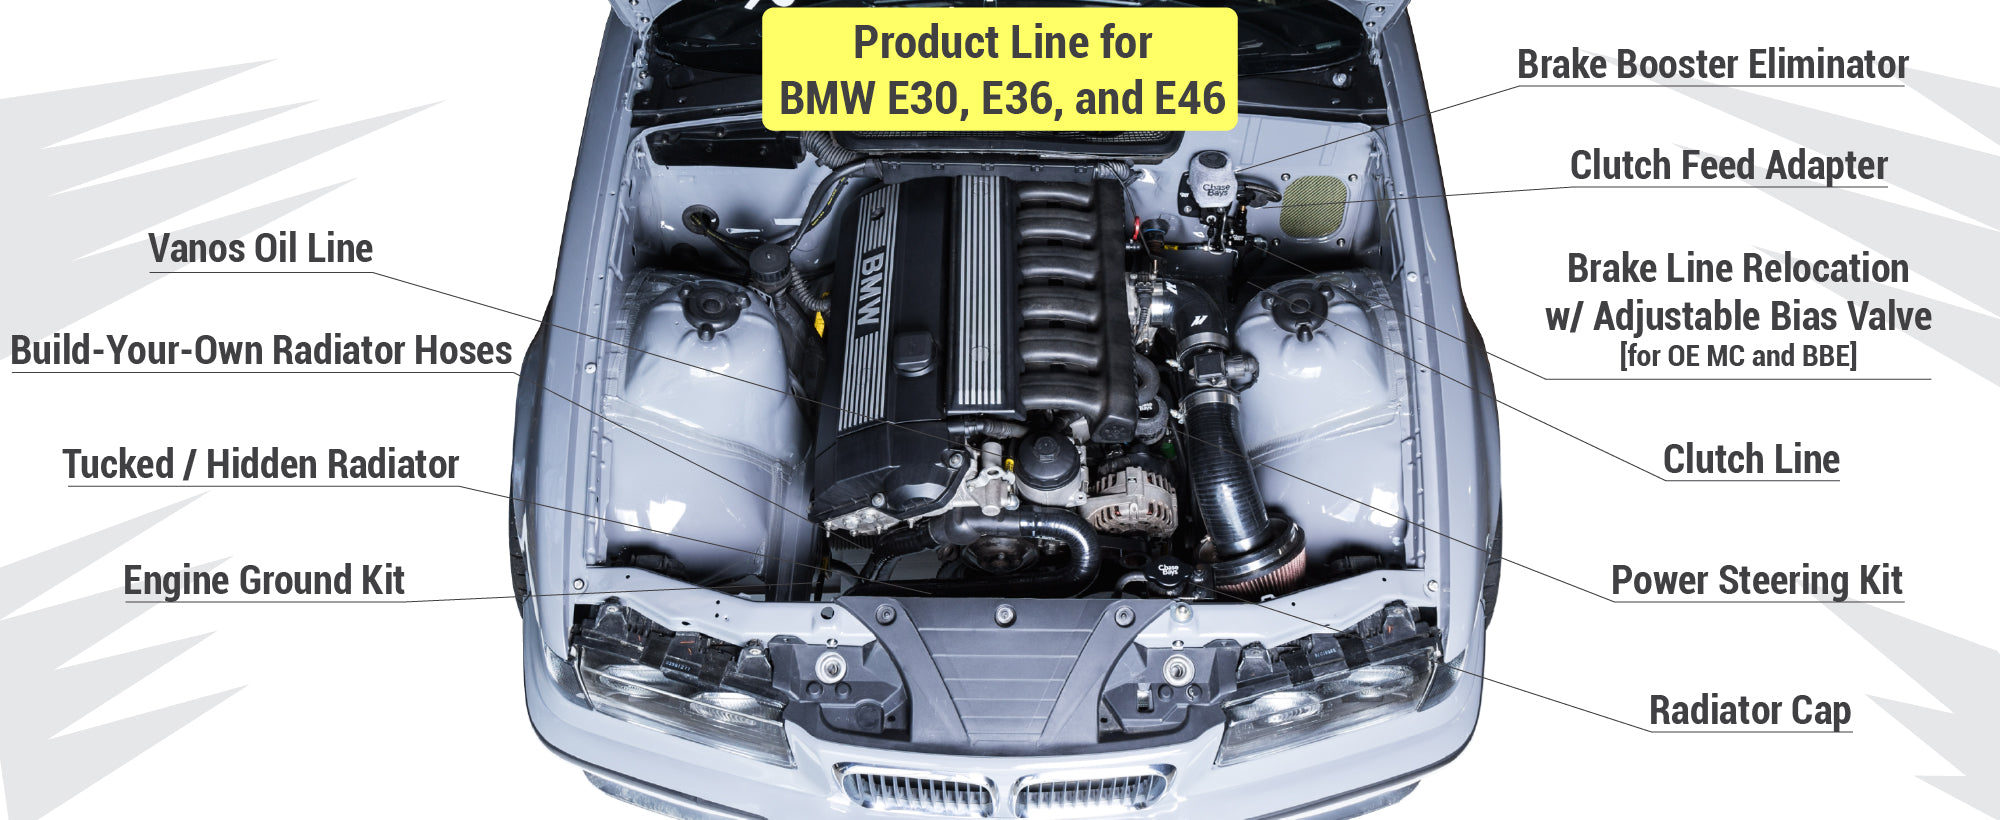 Bmw E36 Air Conditioning Wiring Diagram : Bmw i engine diagram timing wiring